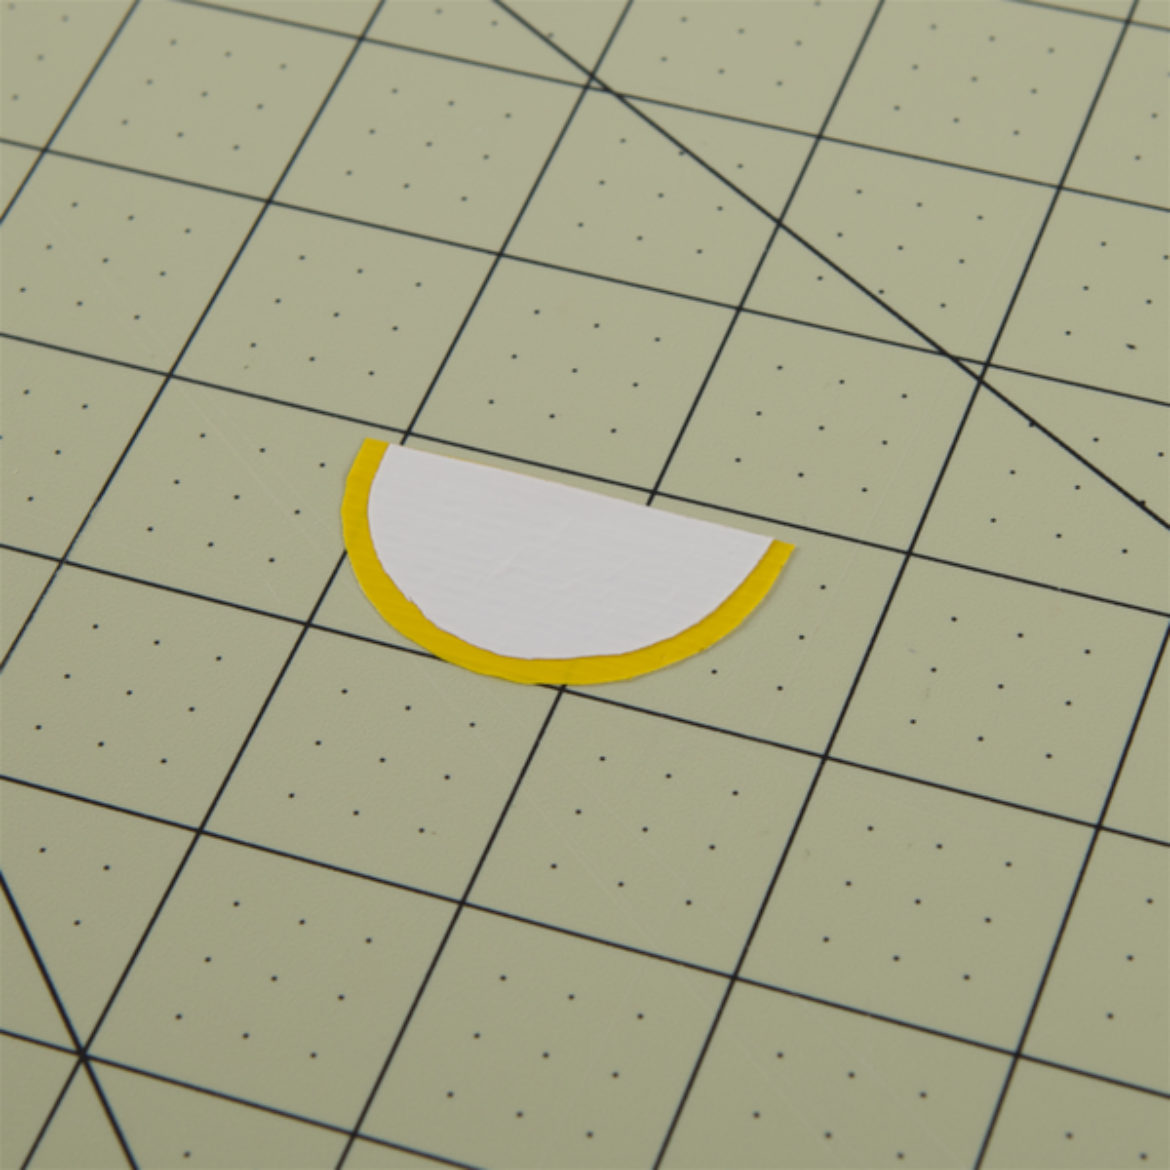 White semicircle from previous step placed over the yellow one